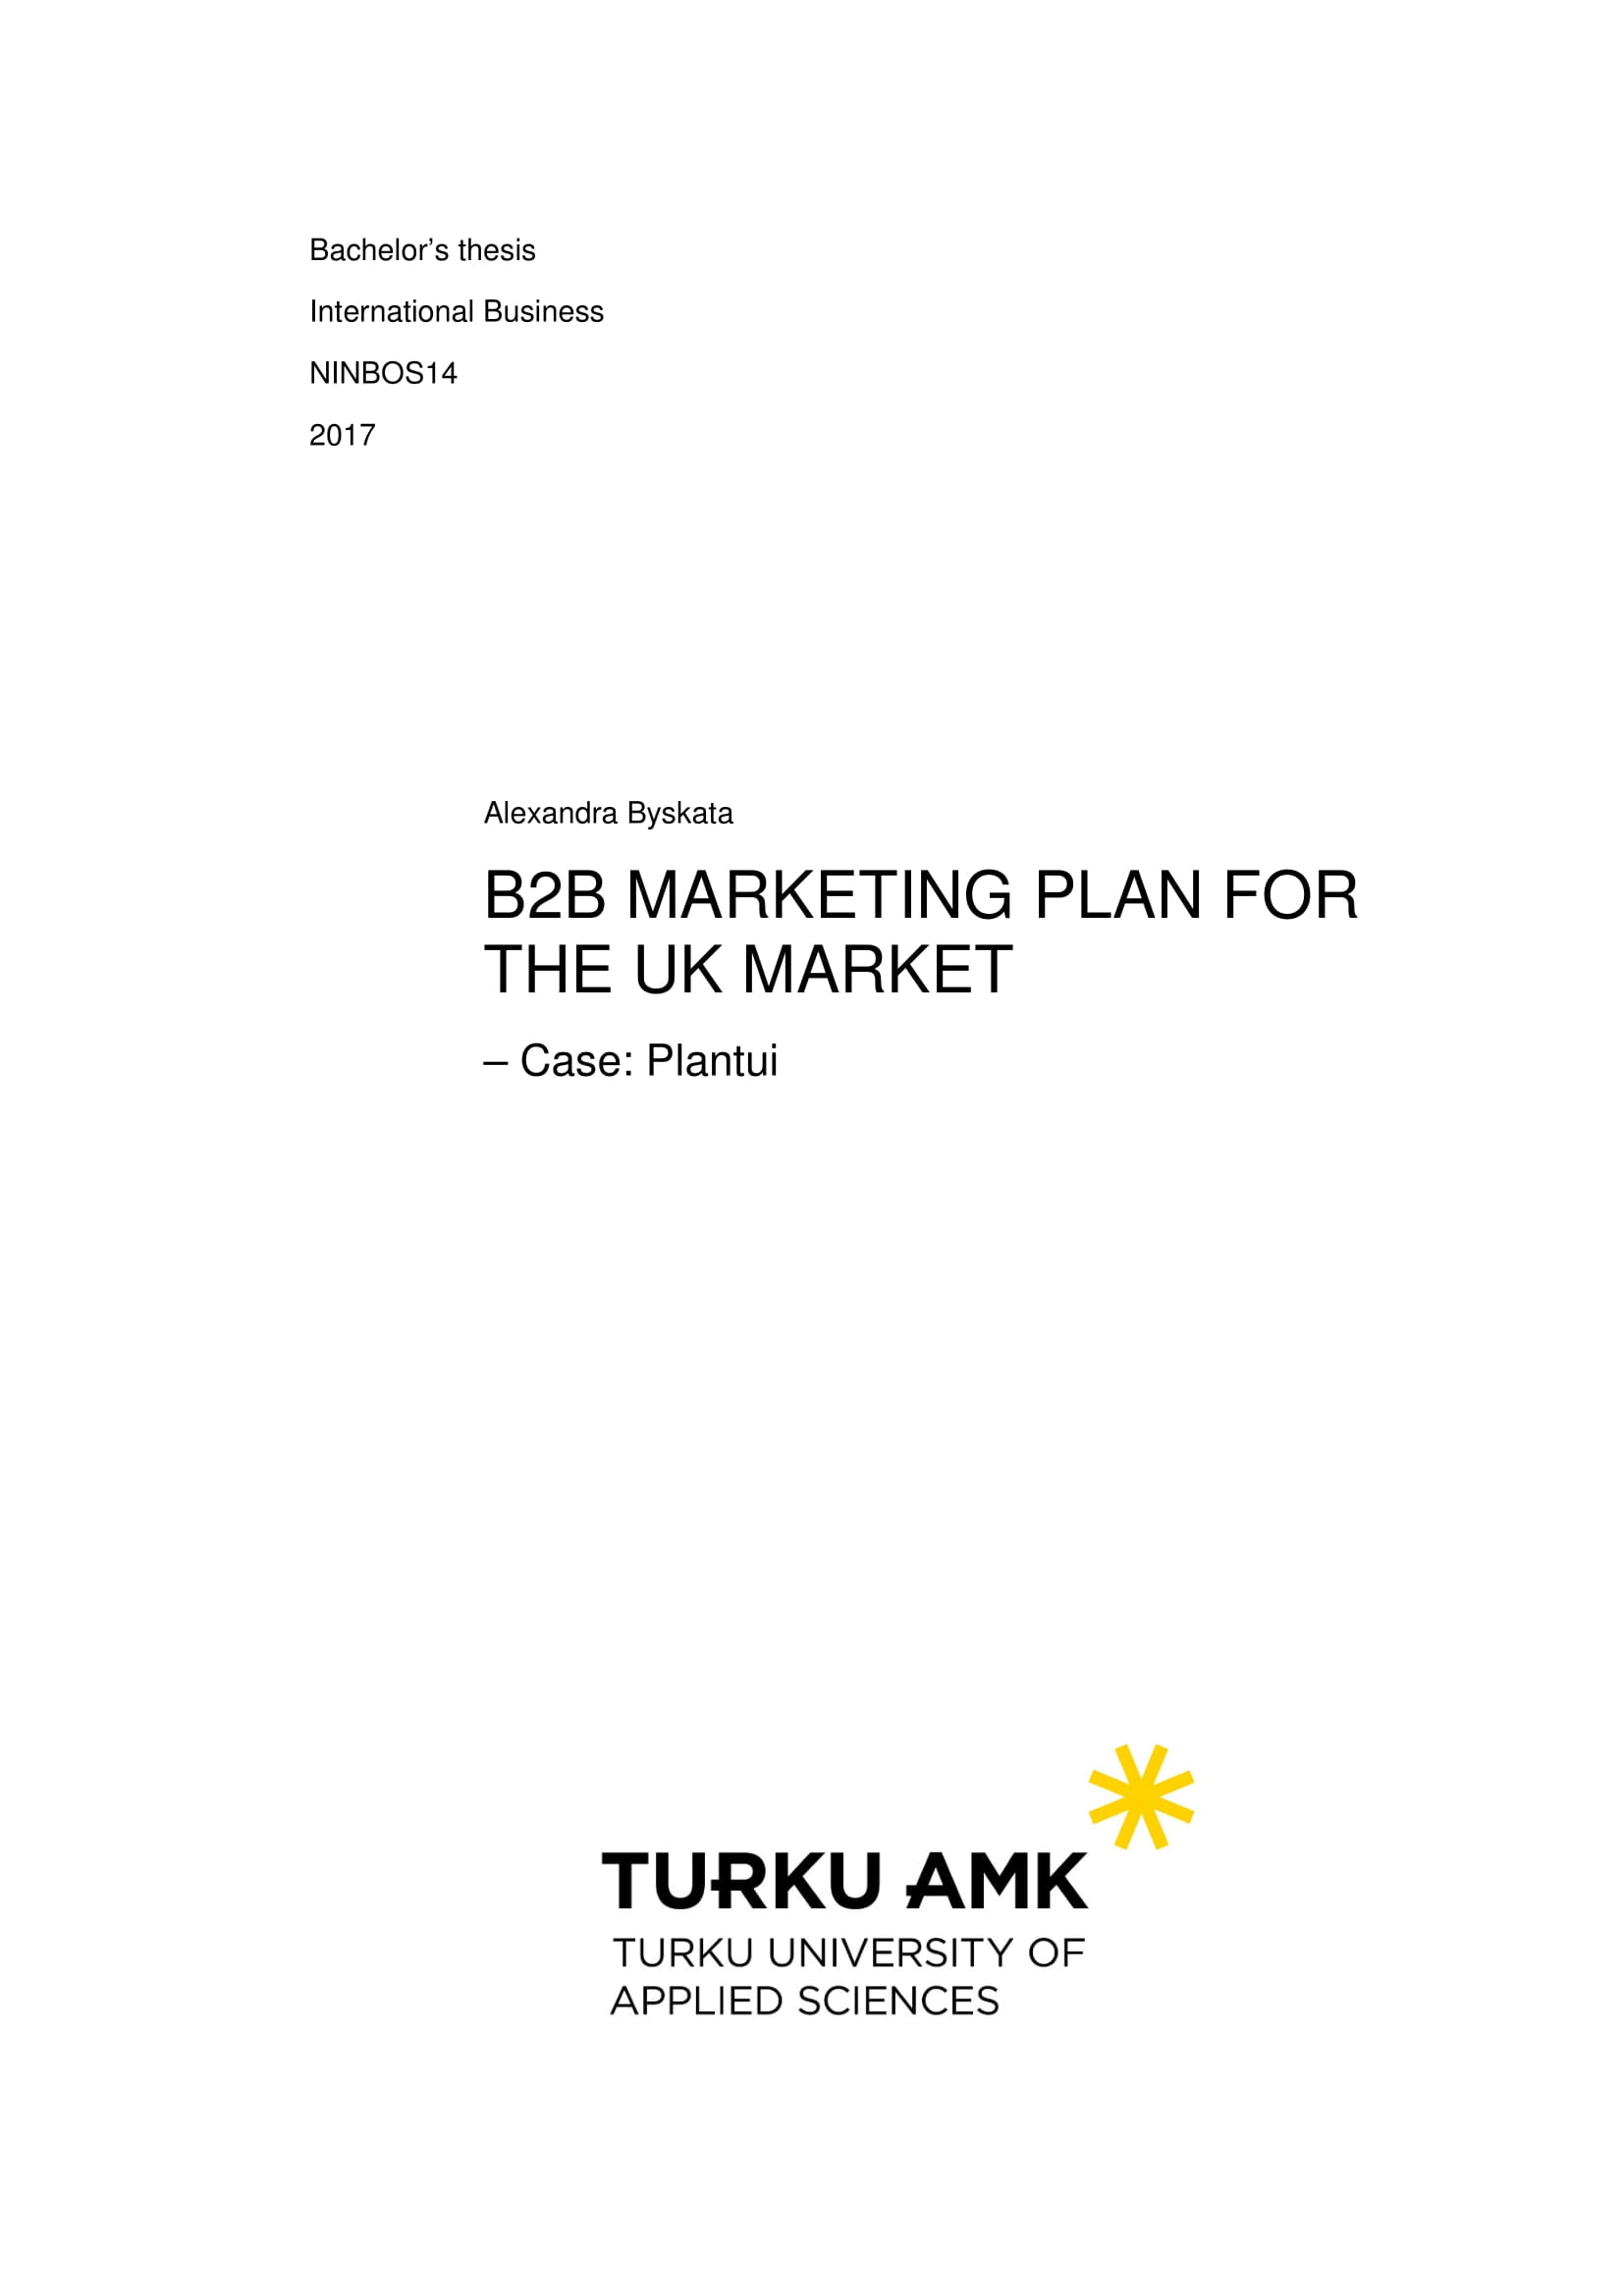 b2b marketing plan for uk market example